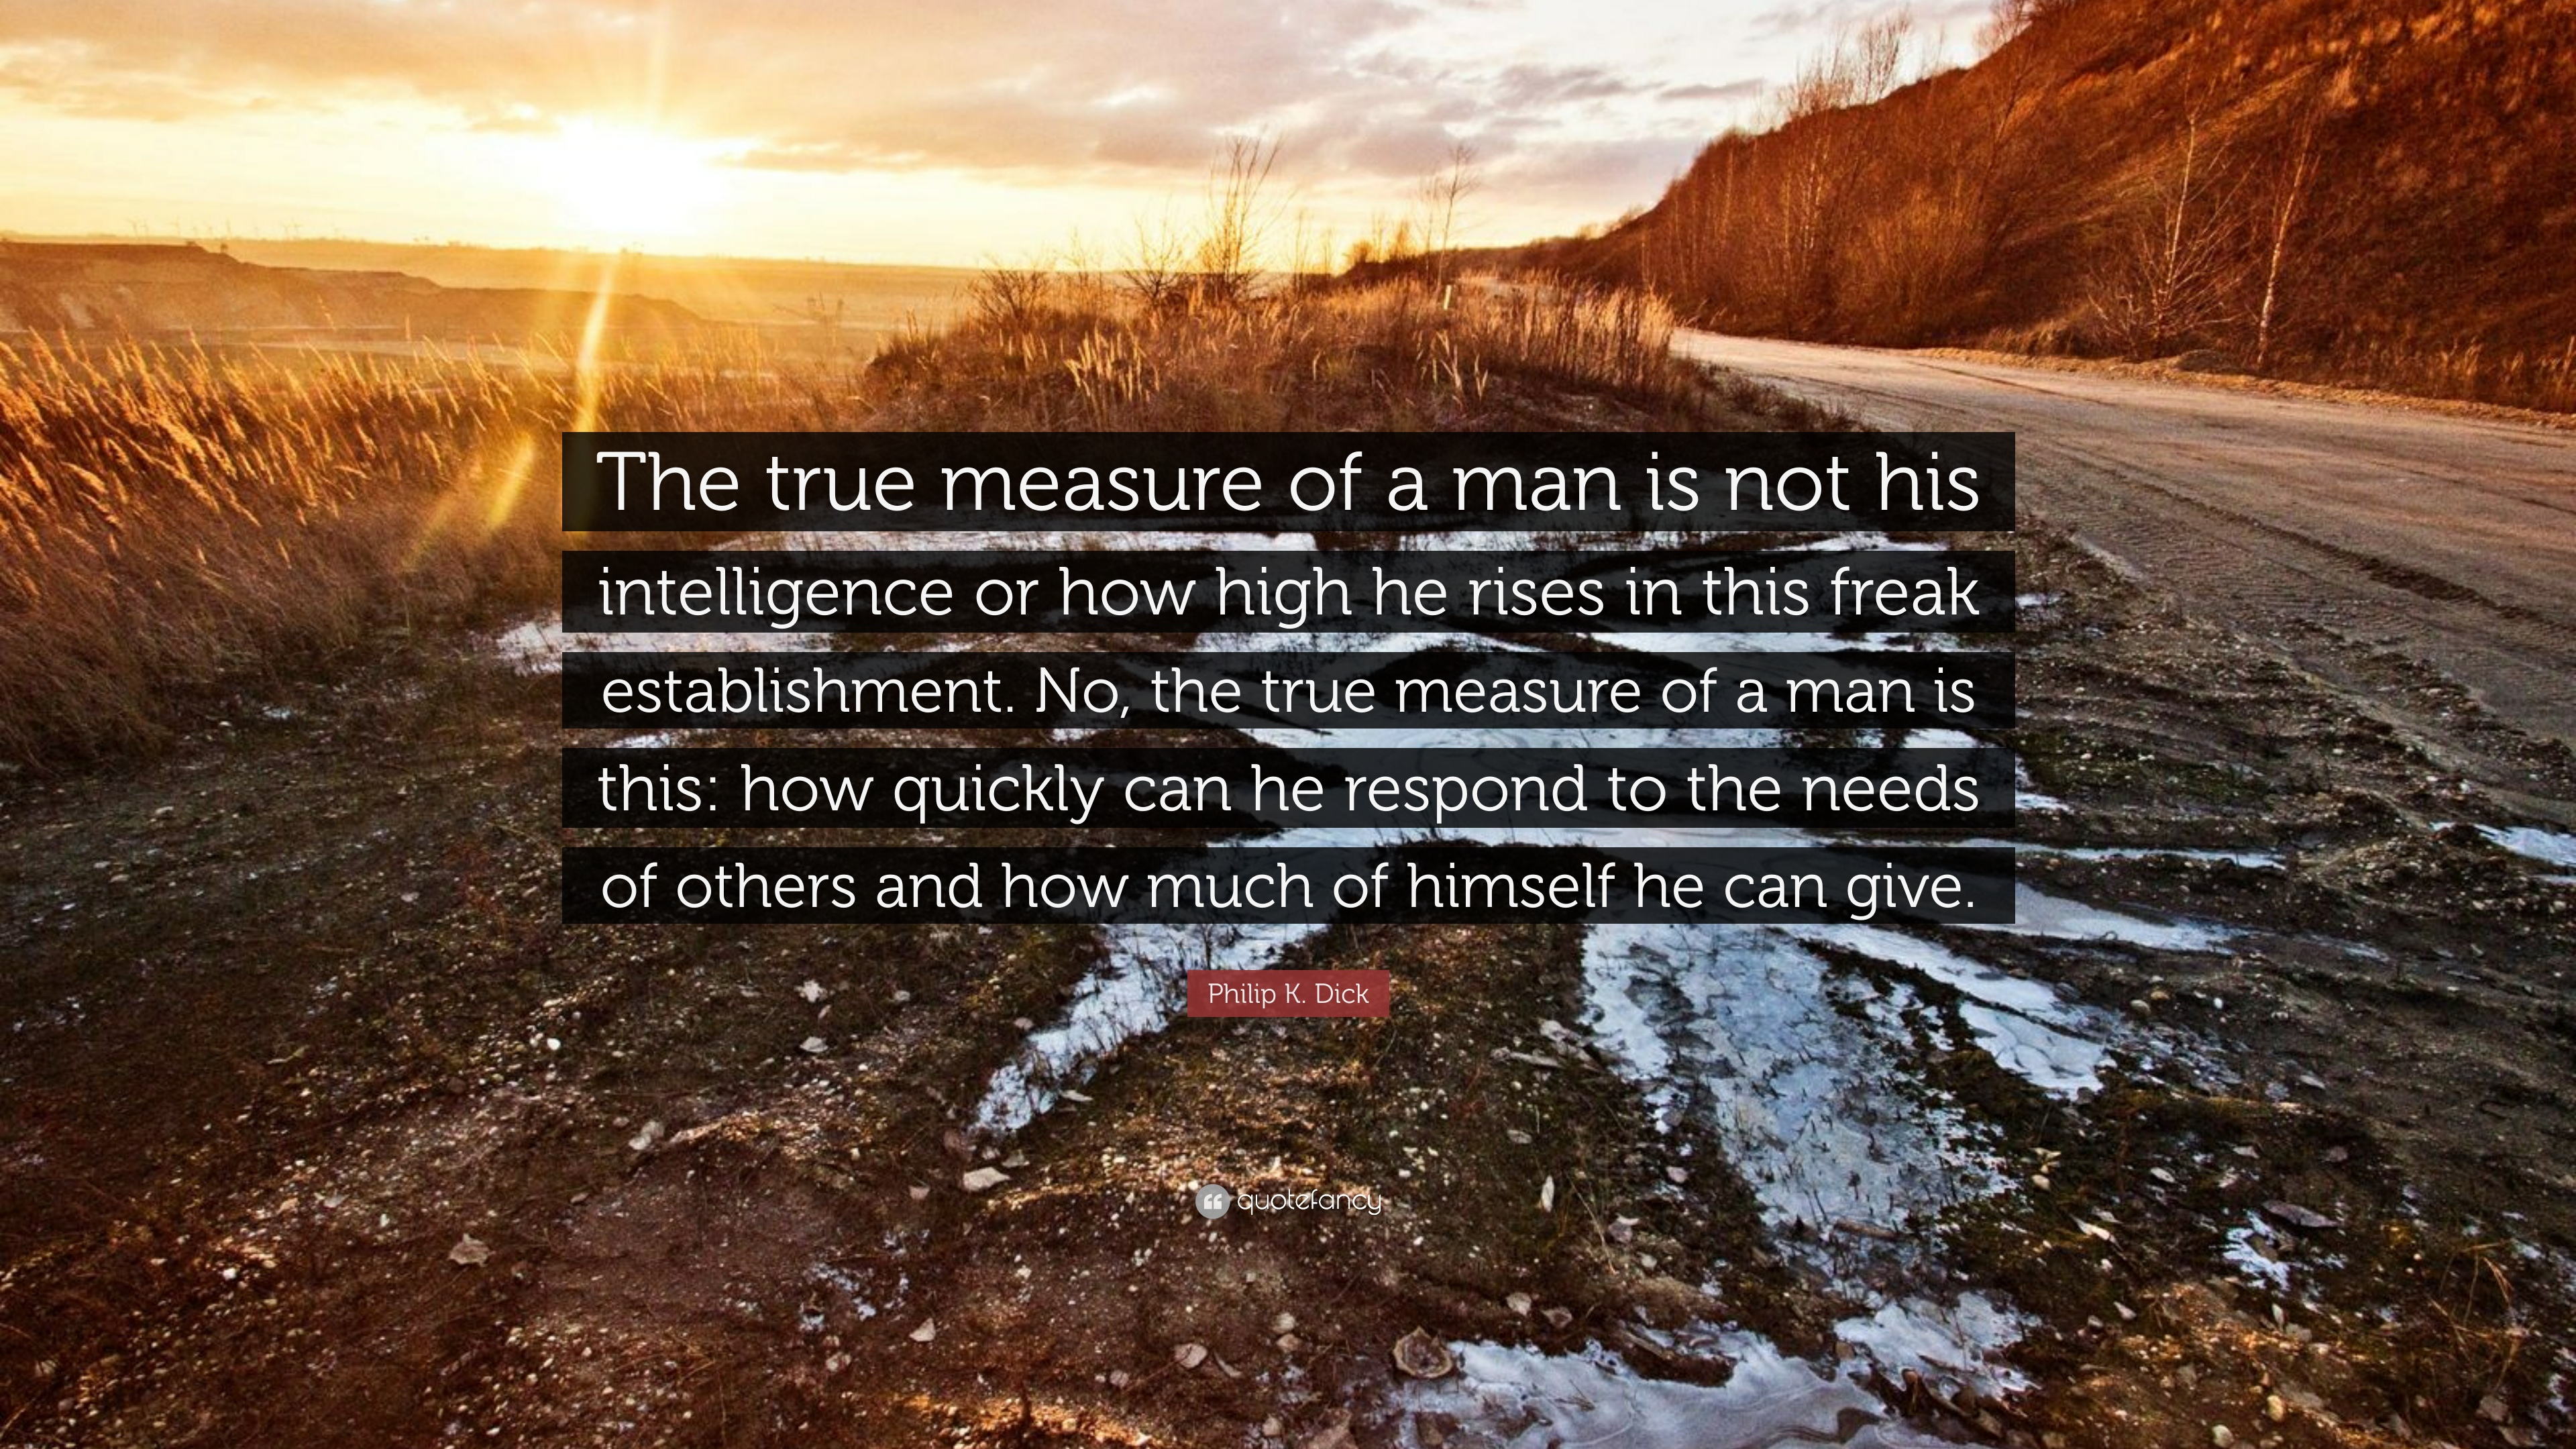 Philip K Dick Quote The True Measure Of A Man Is Not His